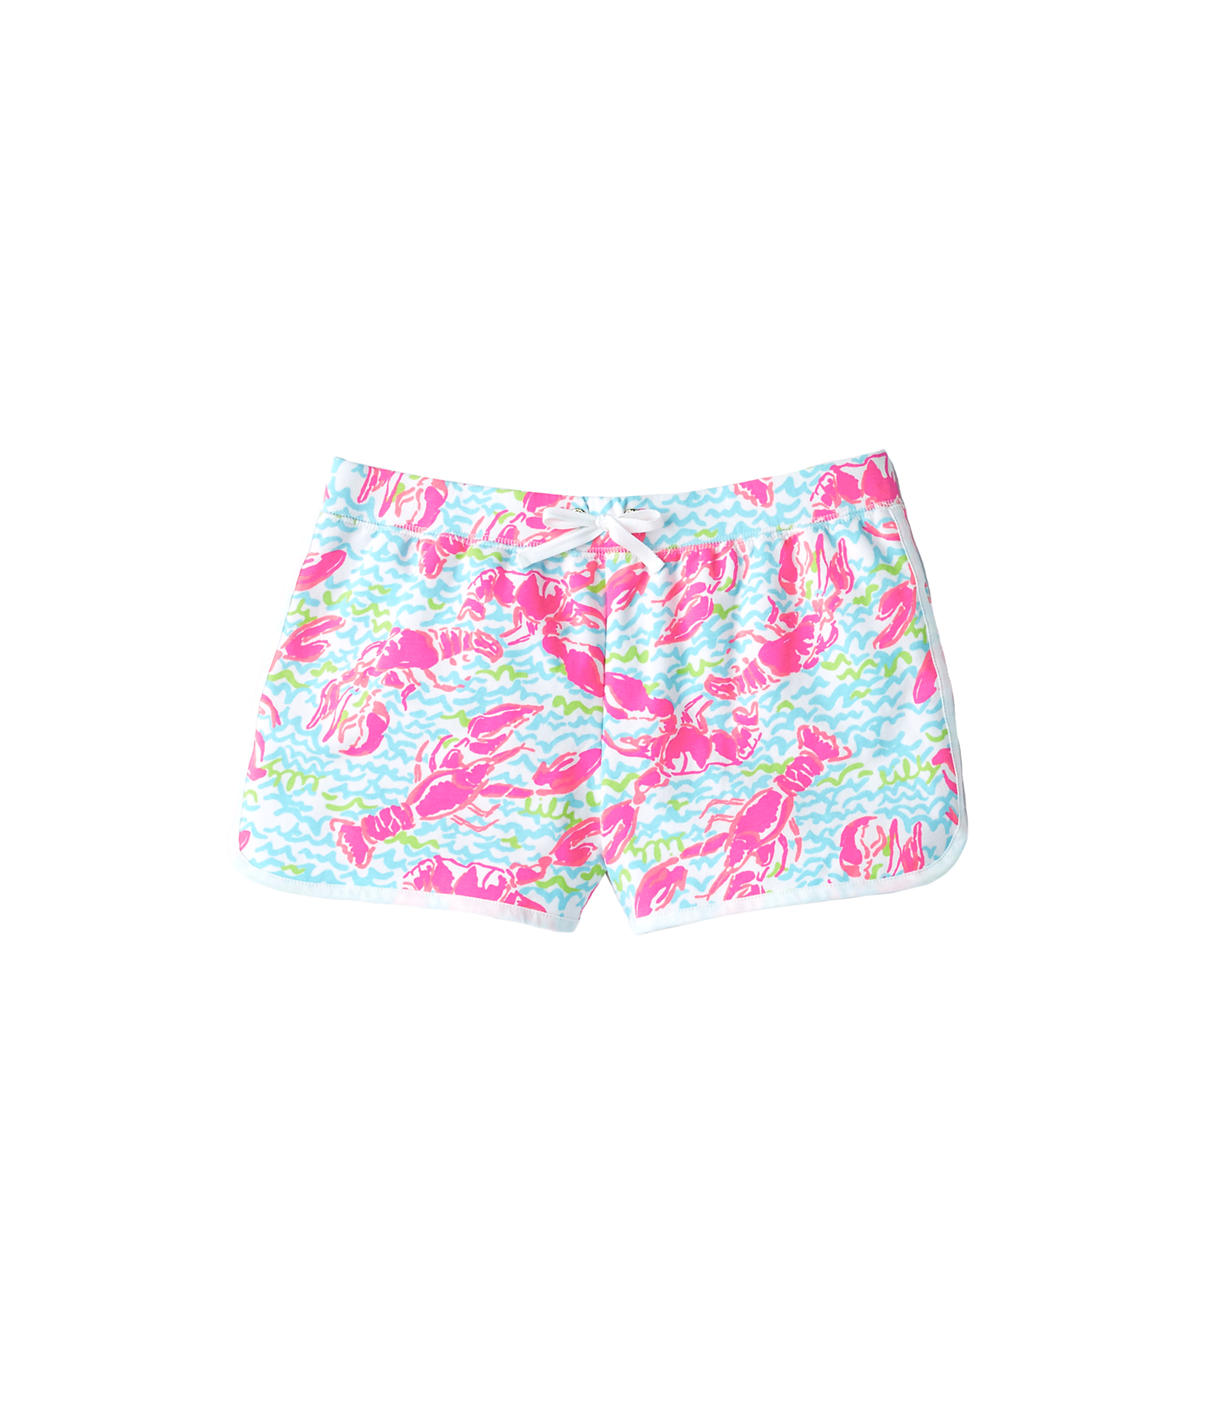 Lilly Pulitzer Girls Little Chrissy Short